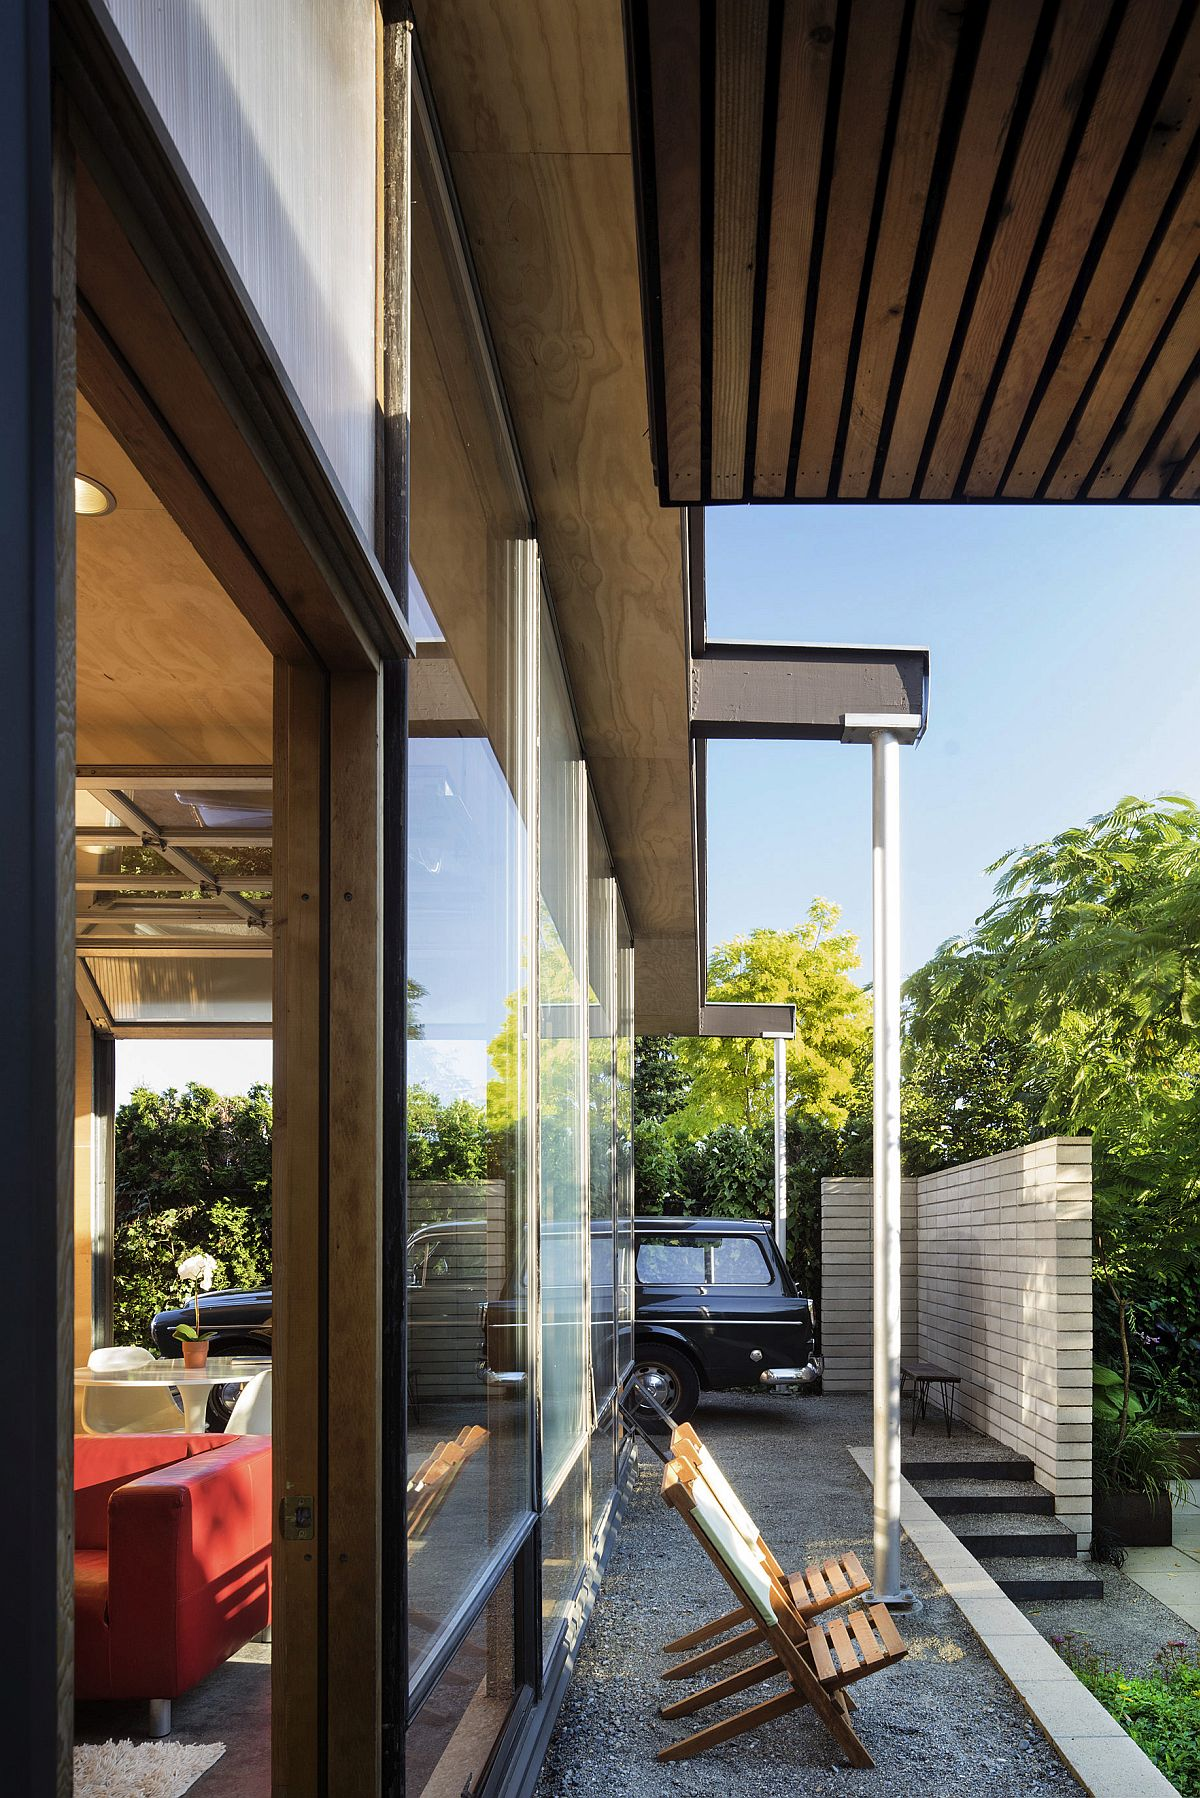 Ingenious design of the revamped home maximizes space